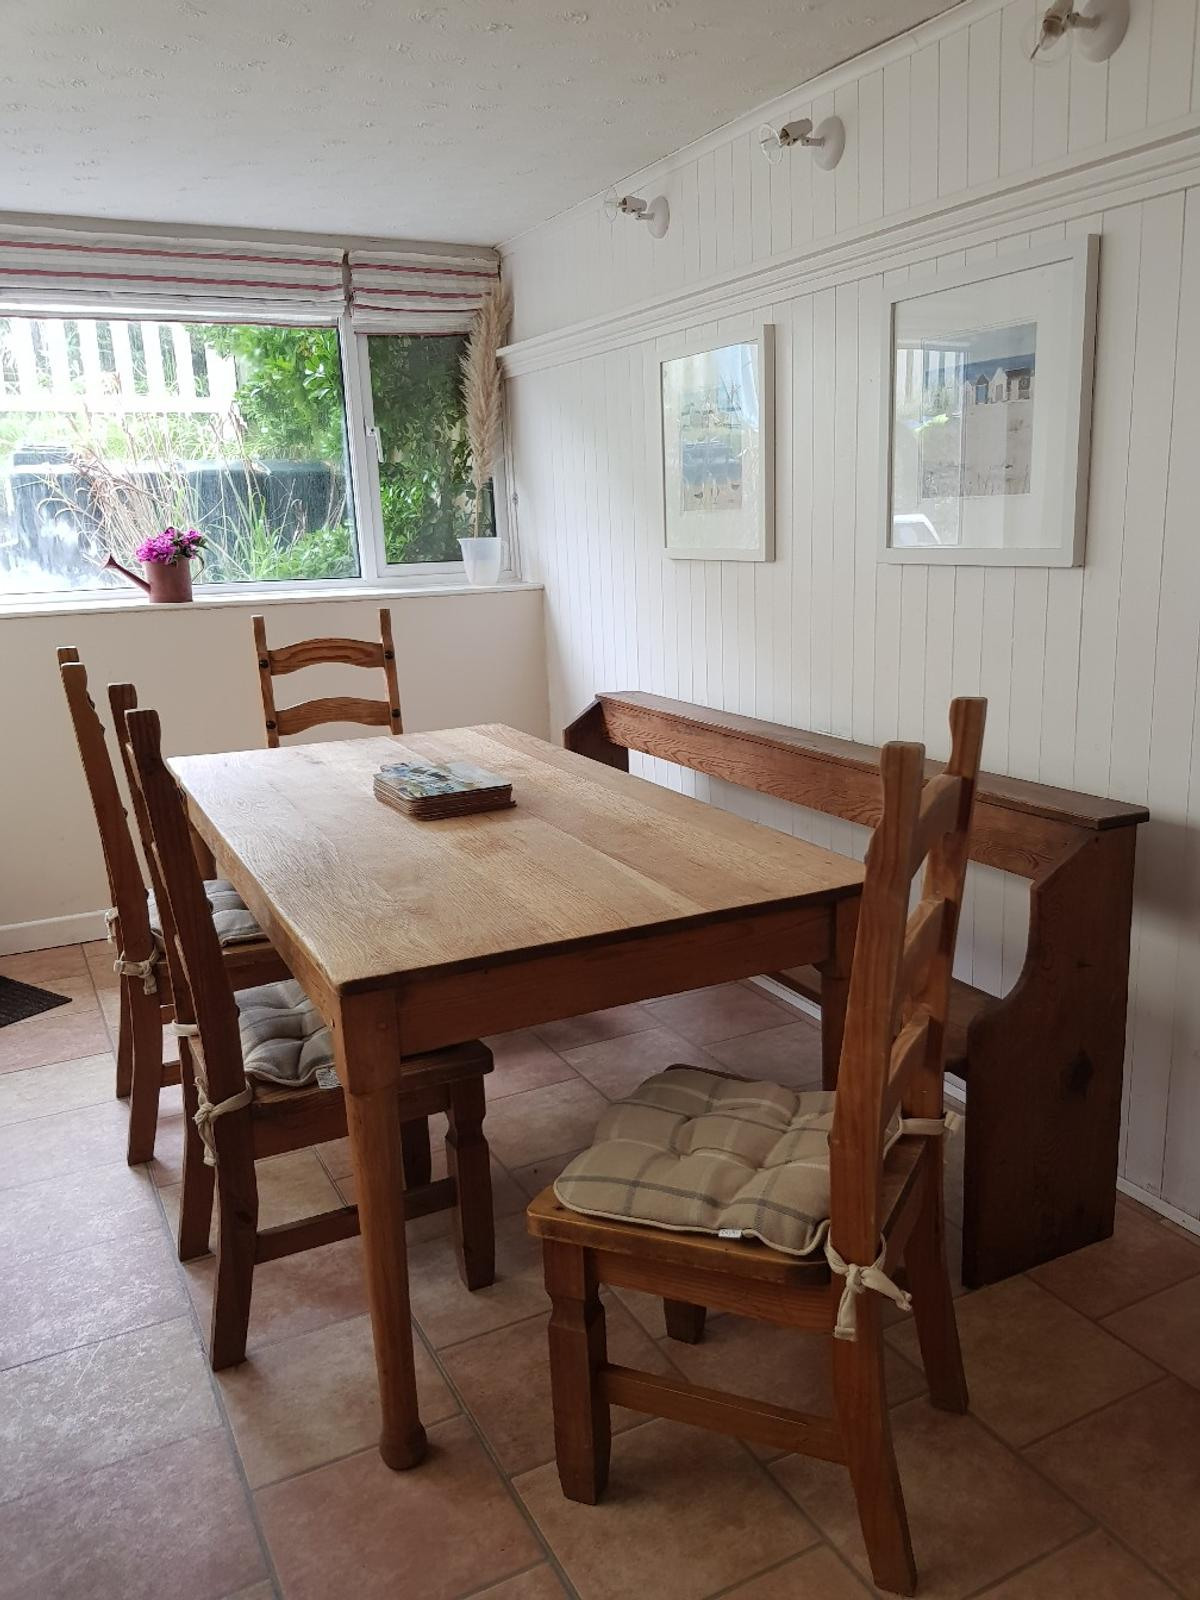 Dining Table Chairs And Church Pew Or Bench In Epping